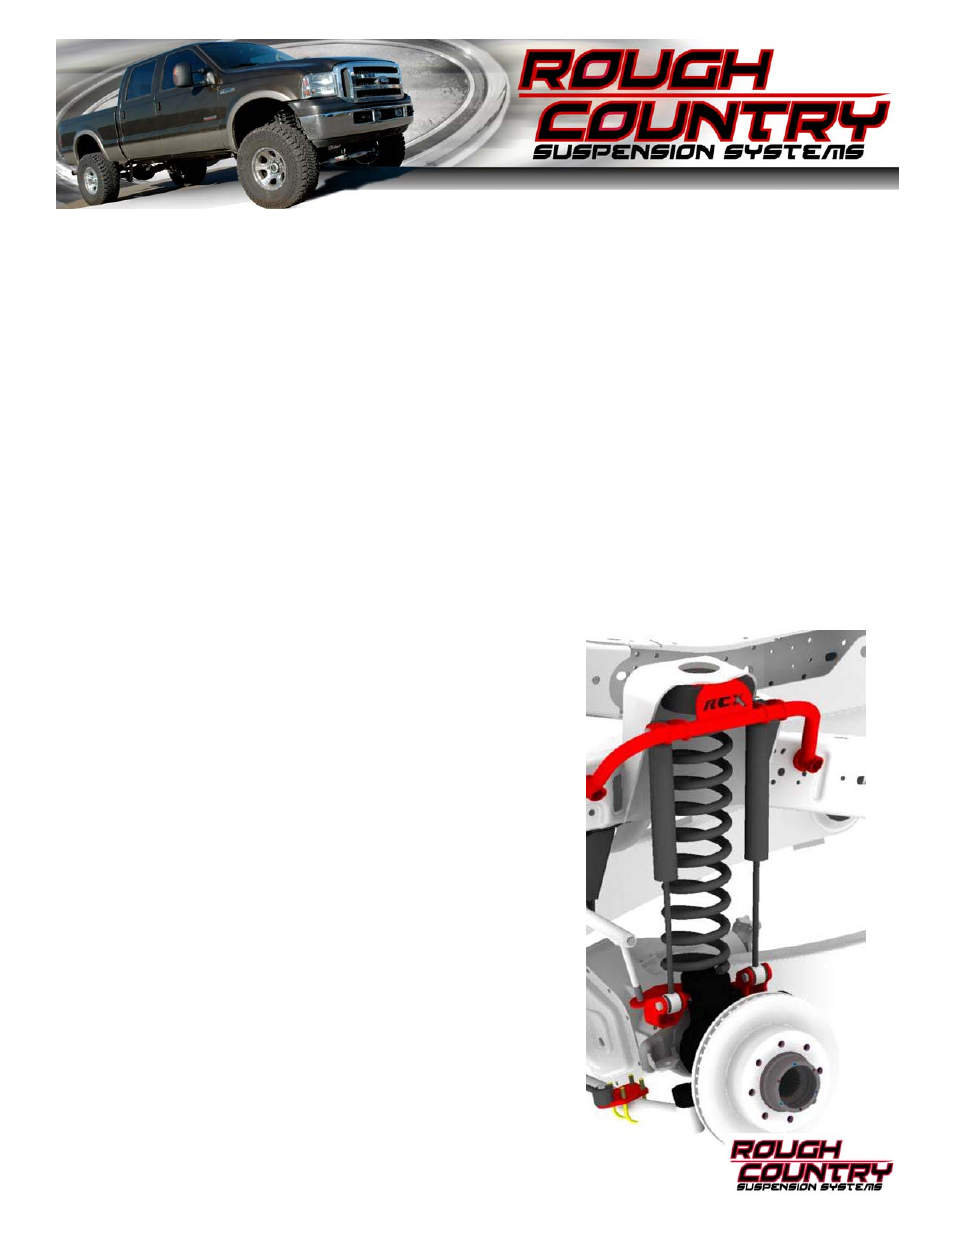 Rough Country 1406 User Manual | 4 pages